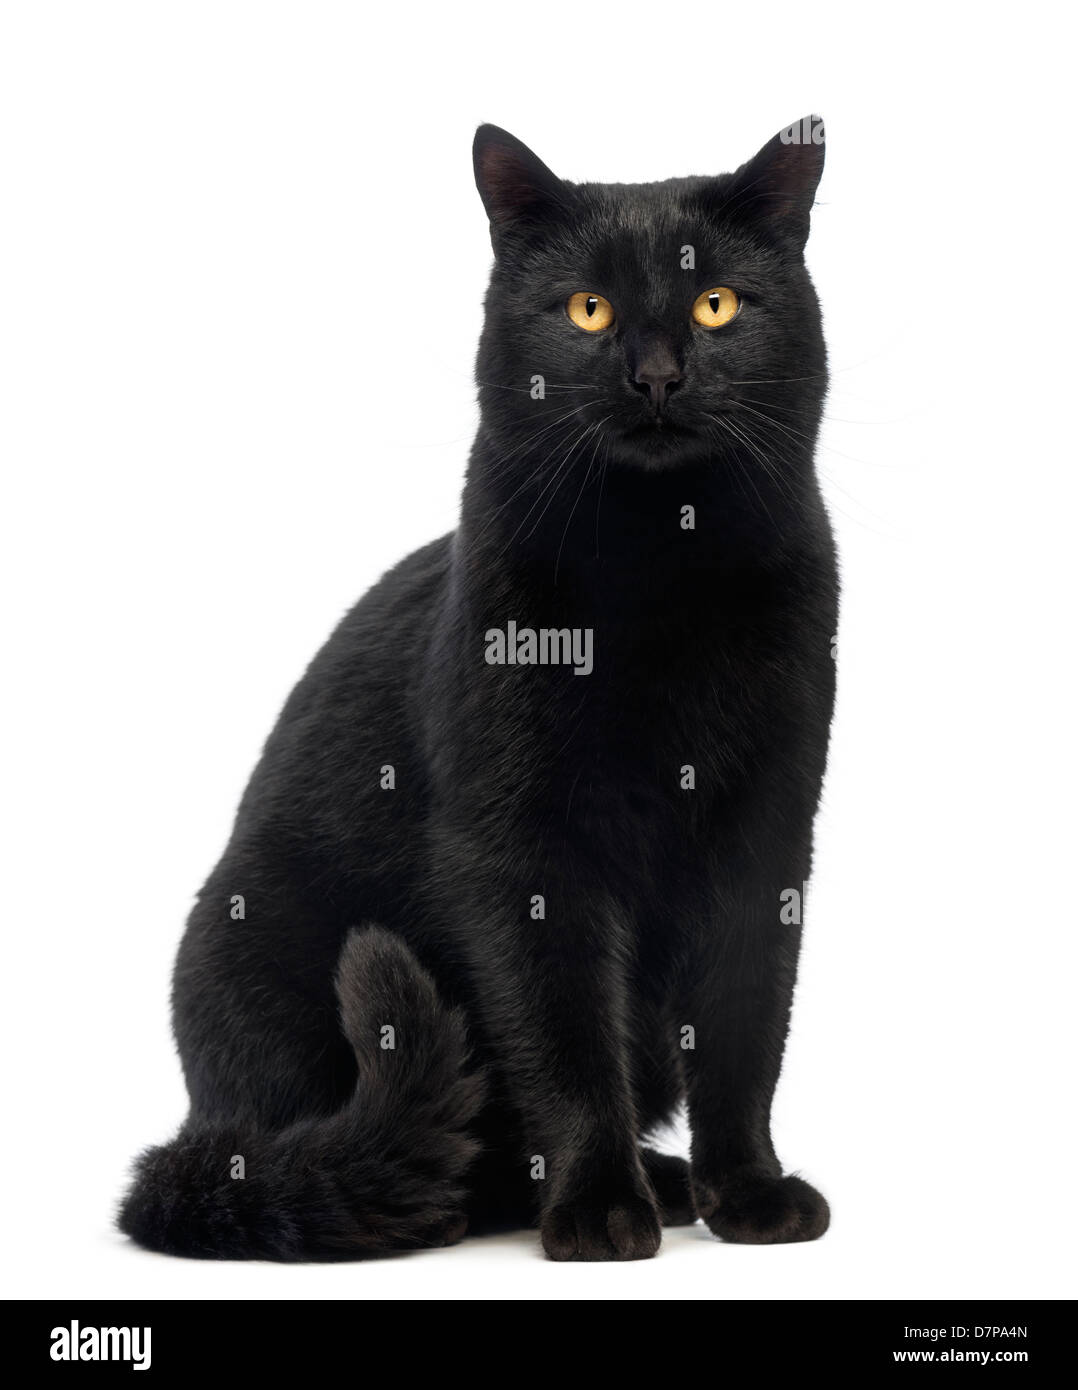 Black Cat sitting and looking at the camera against white background - Stock Image